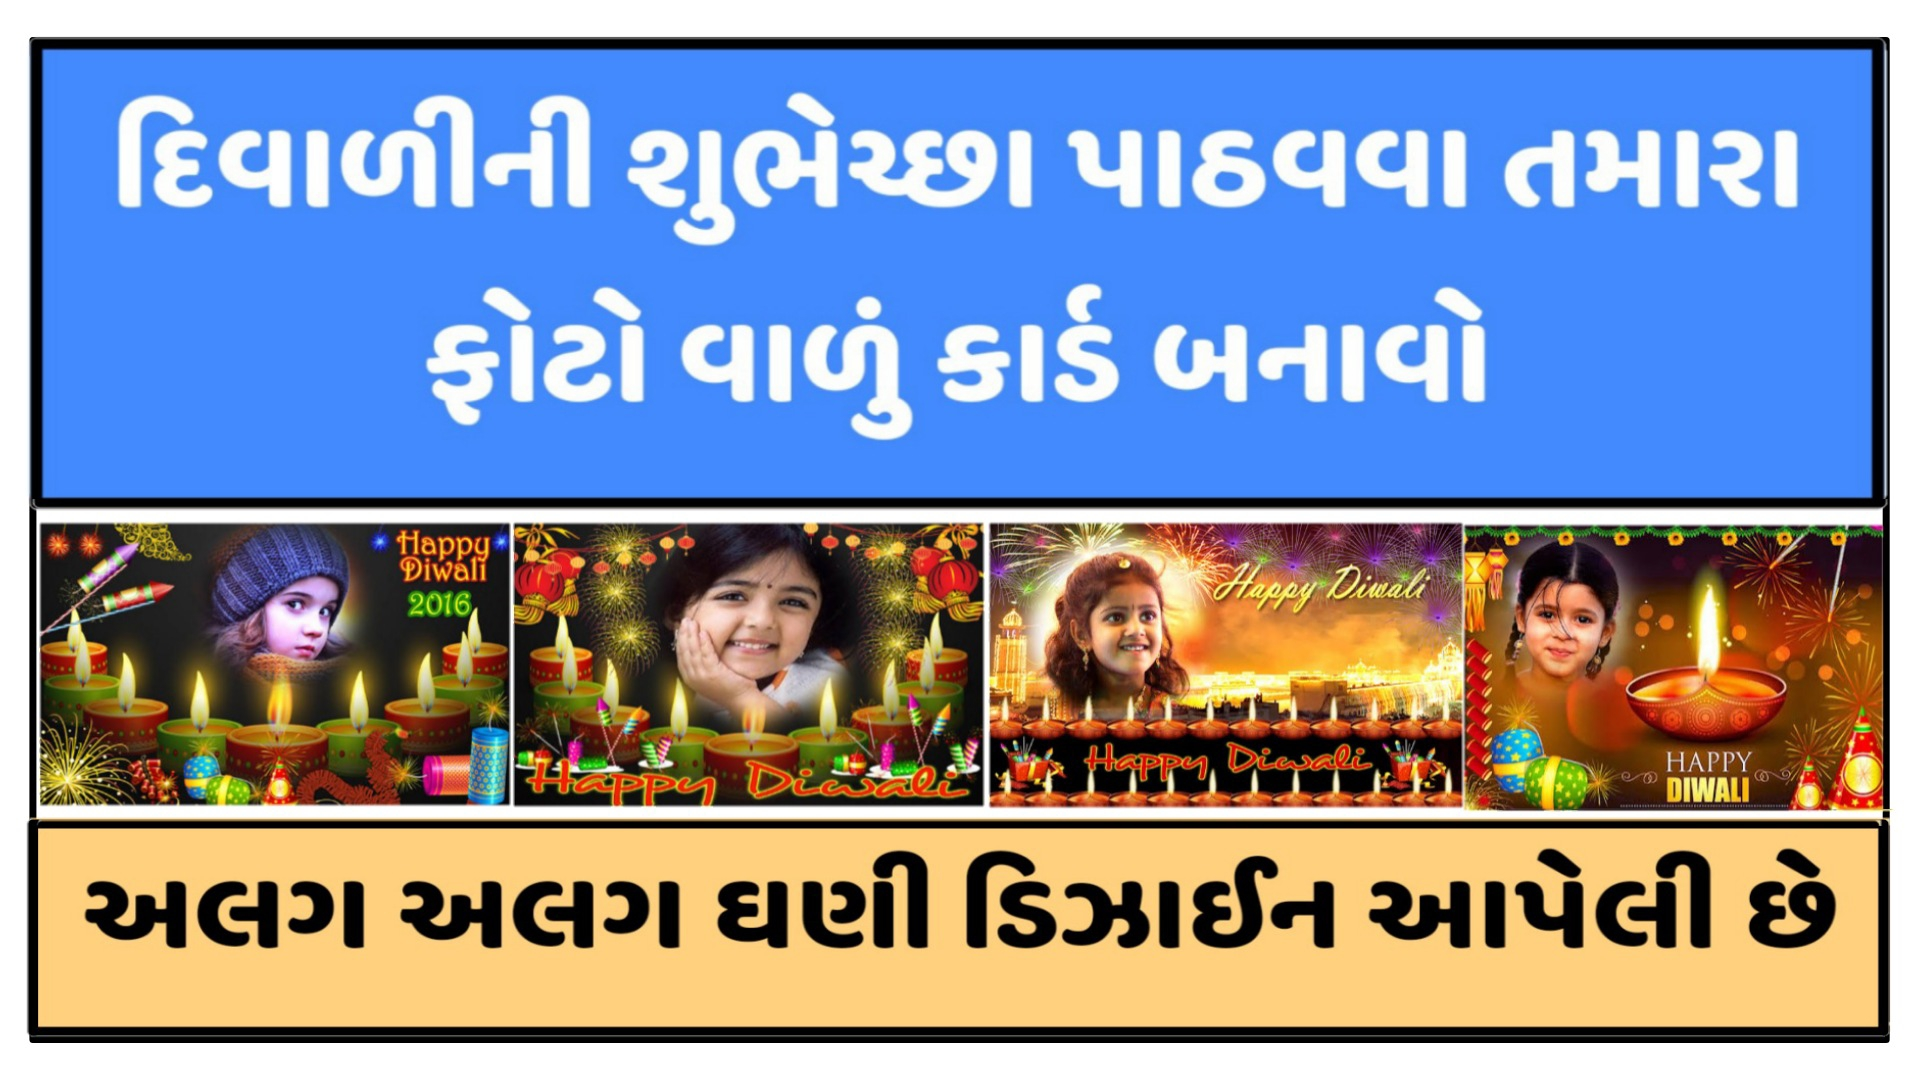 Happy Diwali Photo Frame 2020, Diwali Photo Editor App For Android